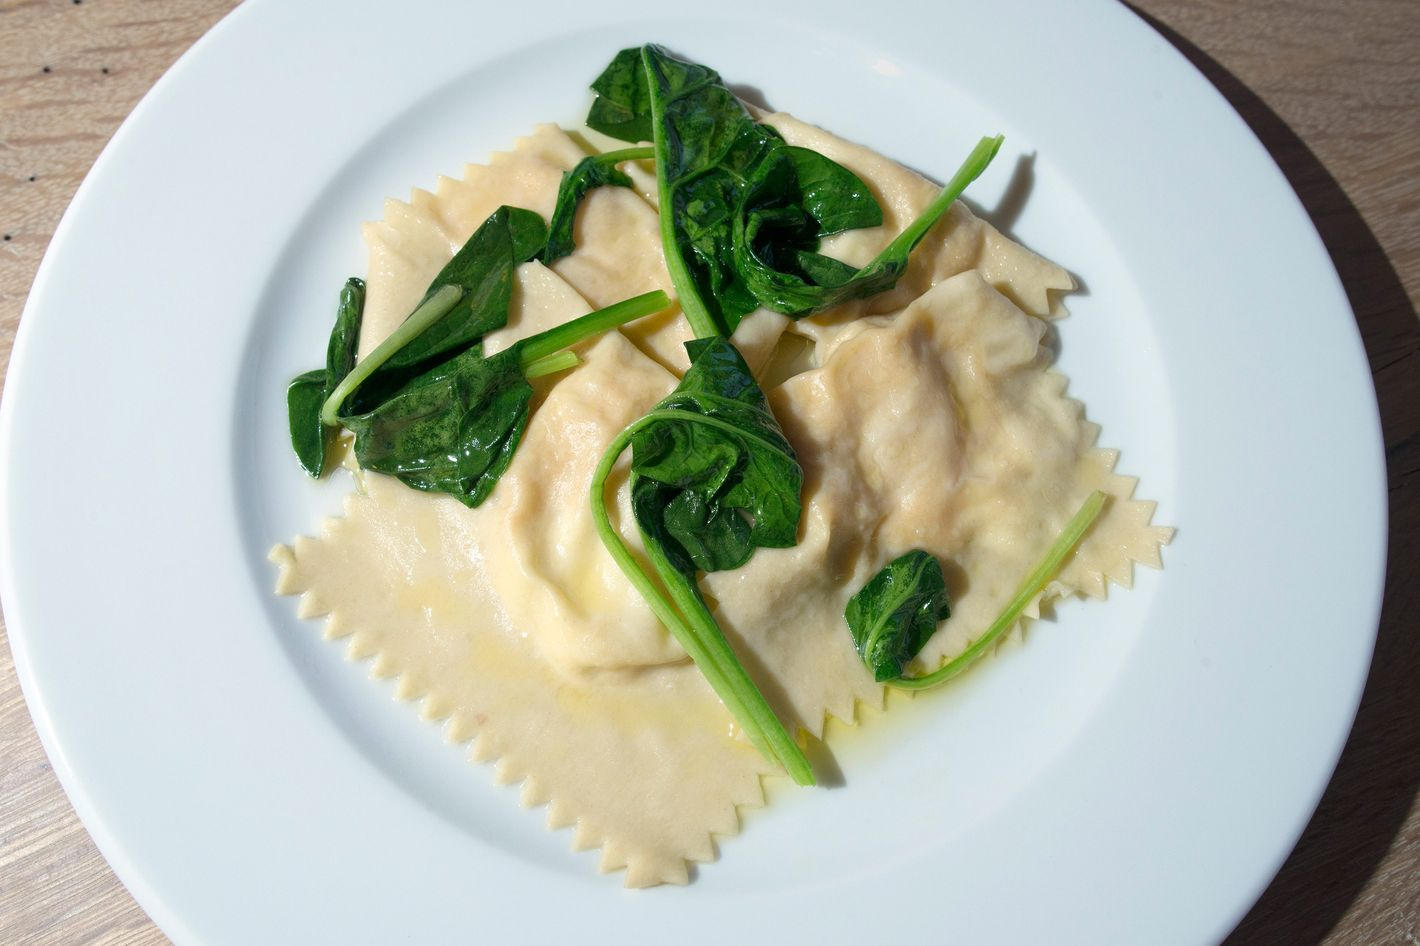 Ravioli of king crab and mascarpone with spinach.